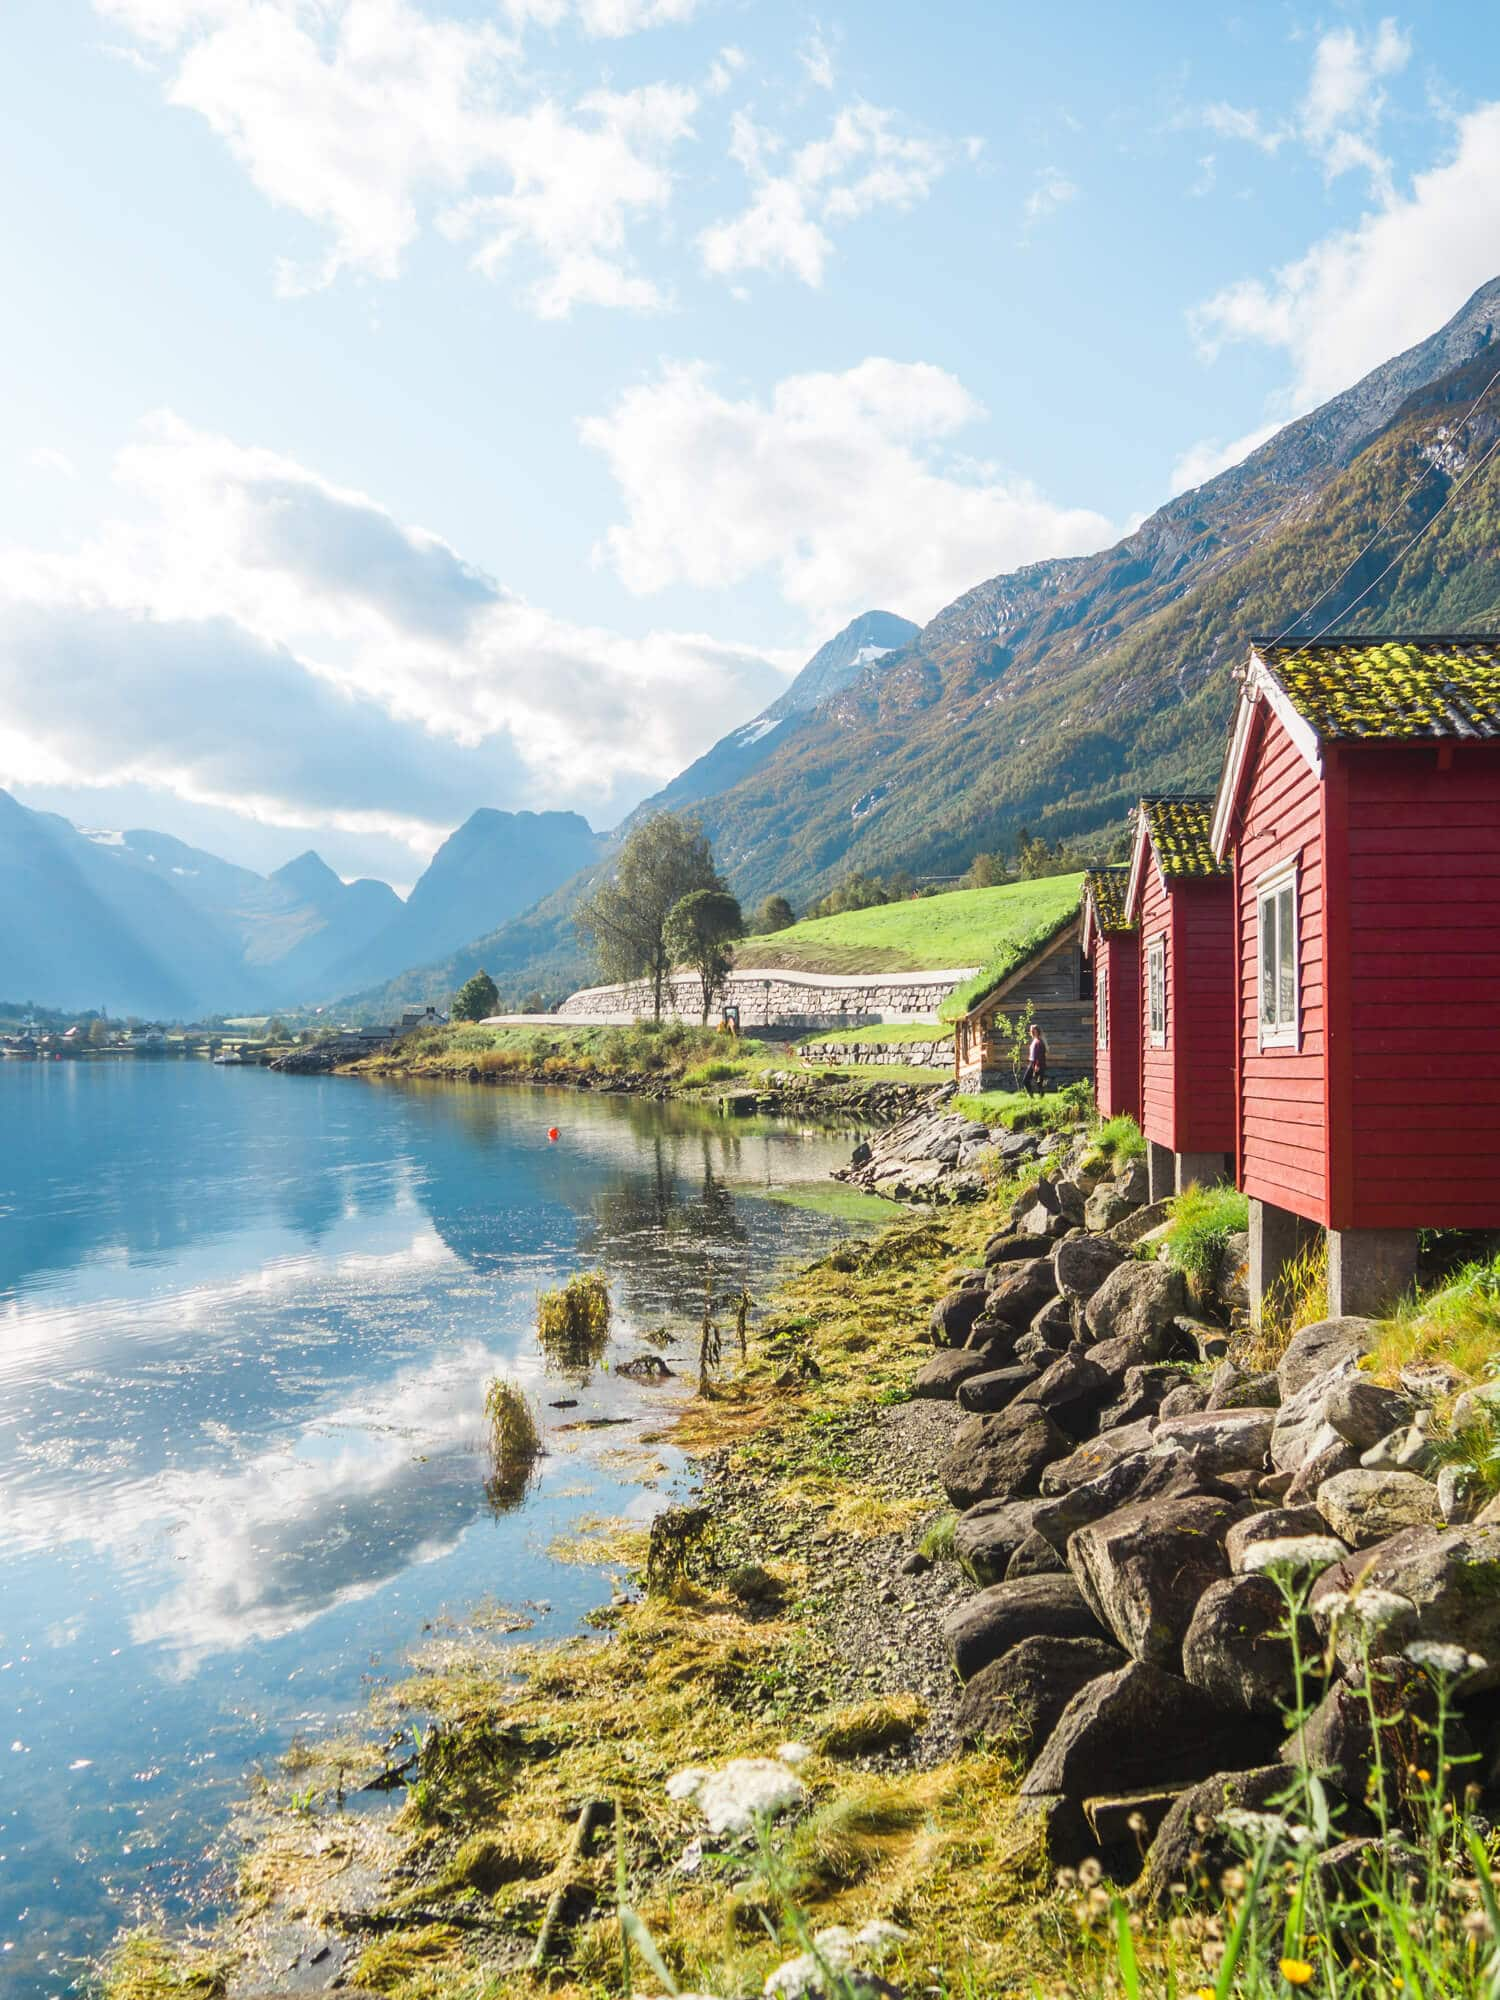 Top things to do in Norway - Olden camping close to the gorgeous Loen lake #bucketlist #norway #travelinspo